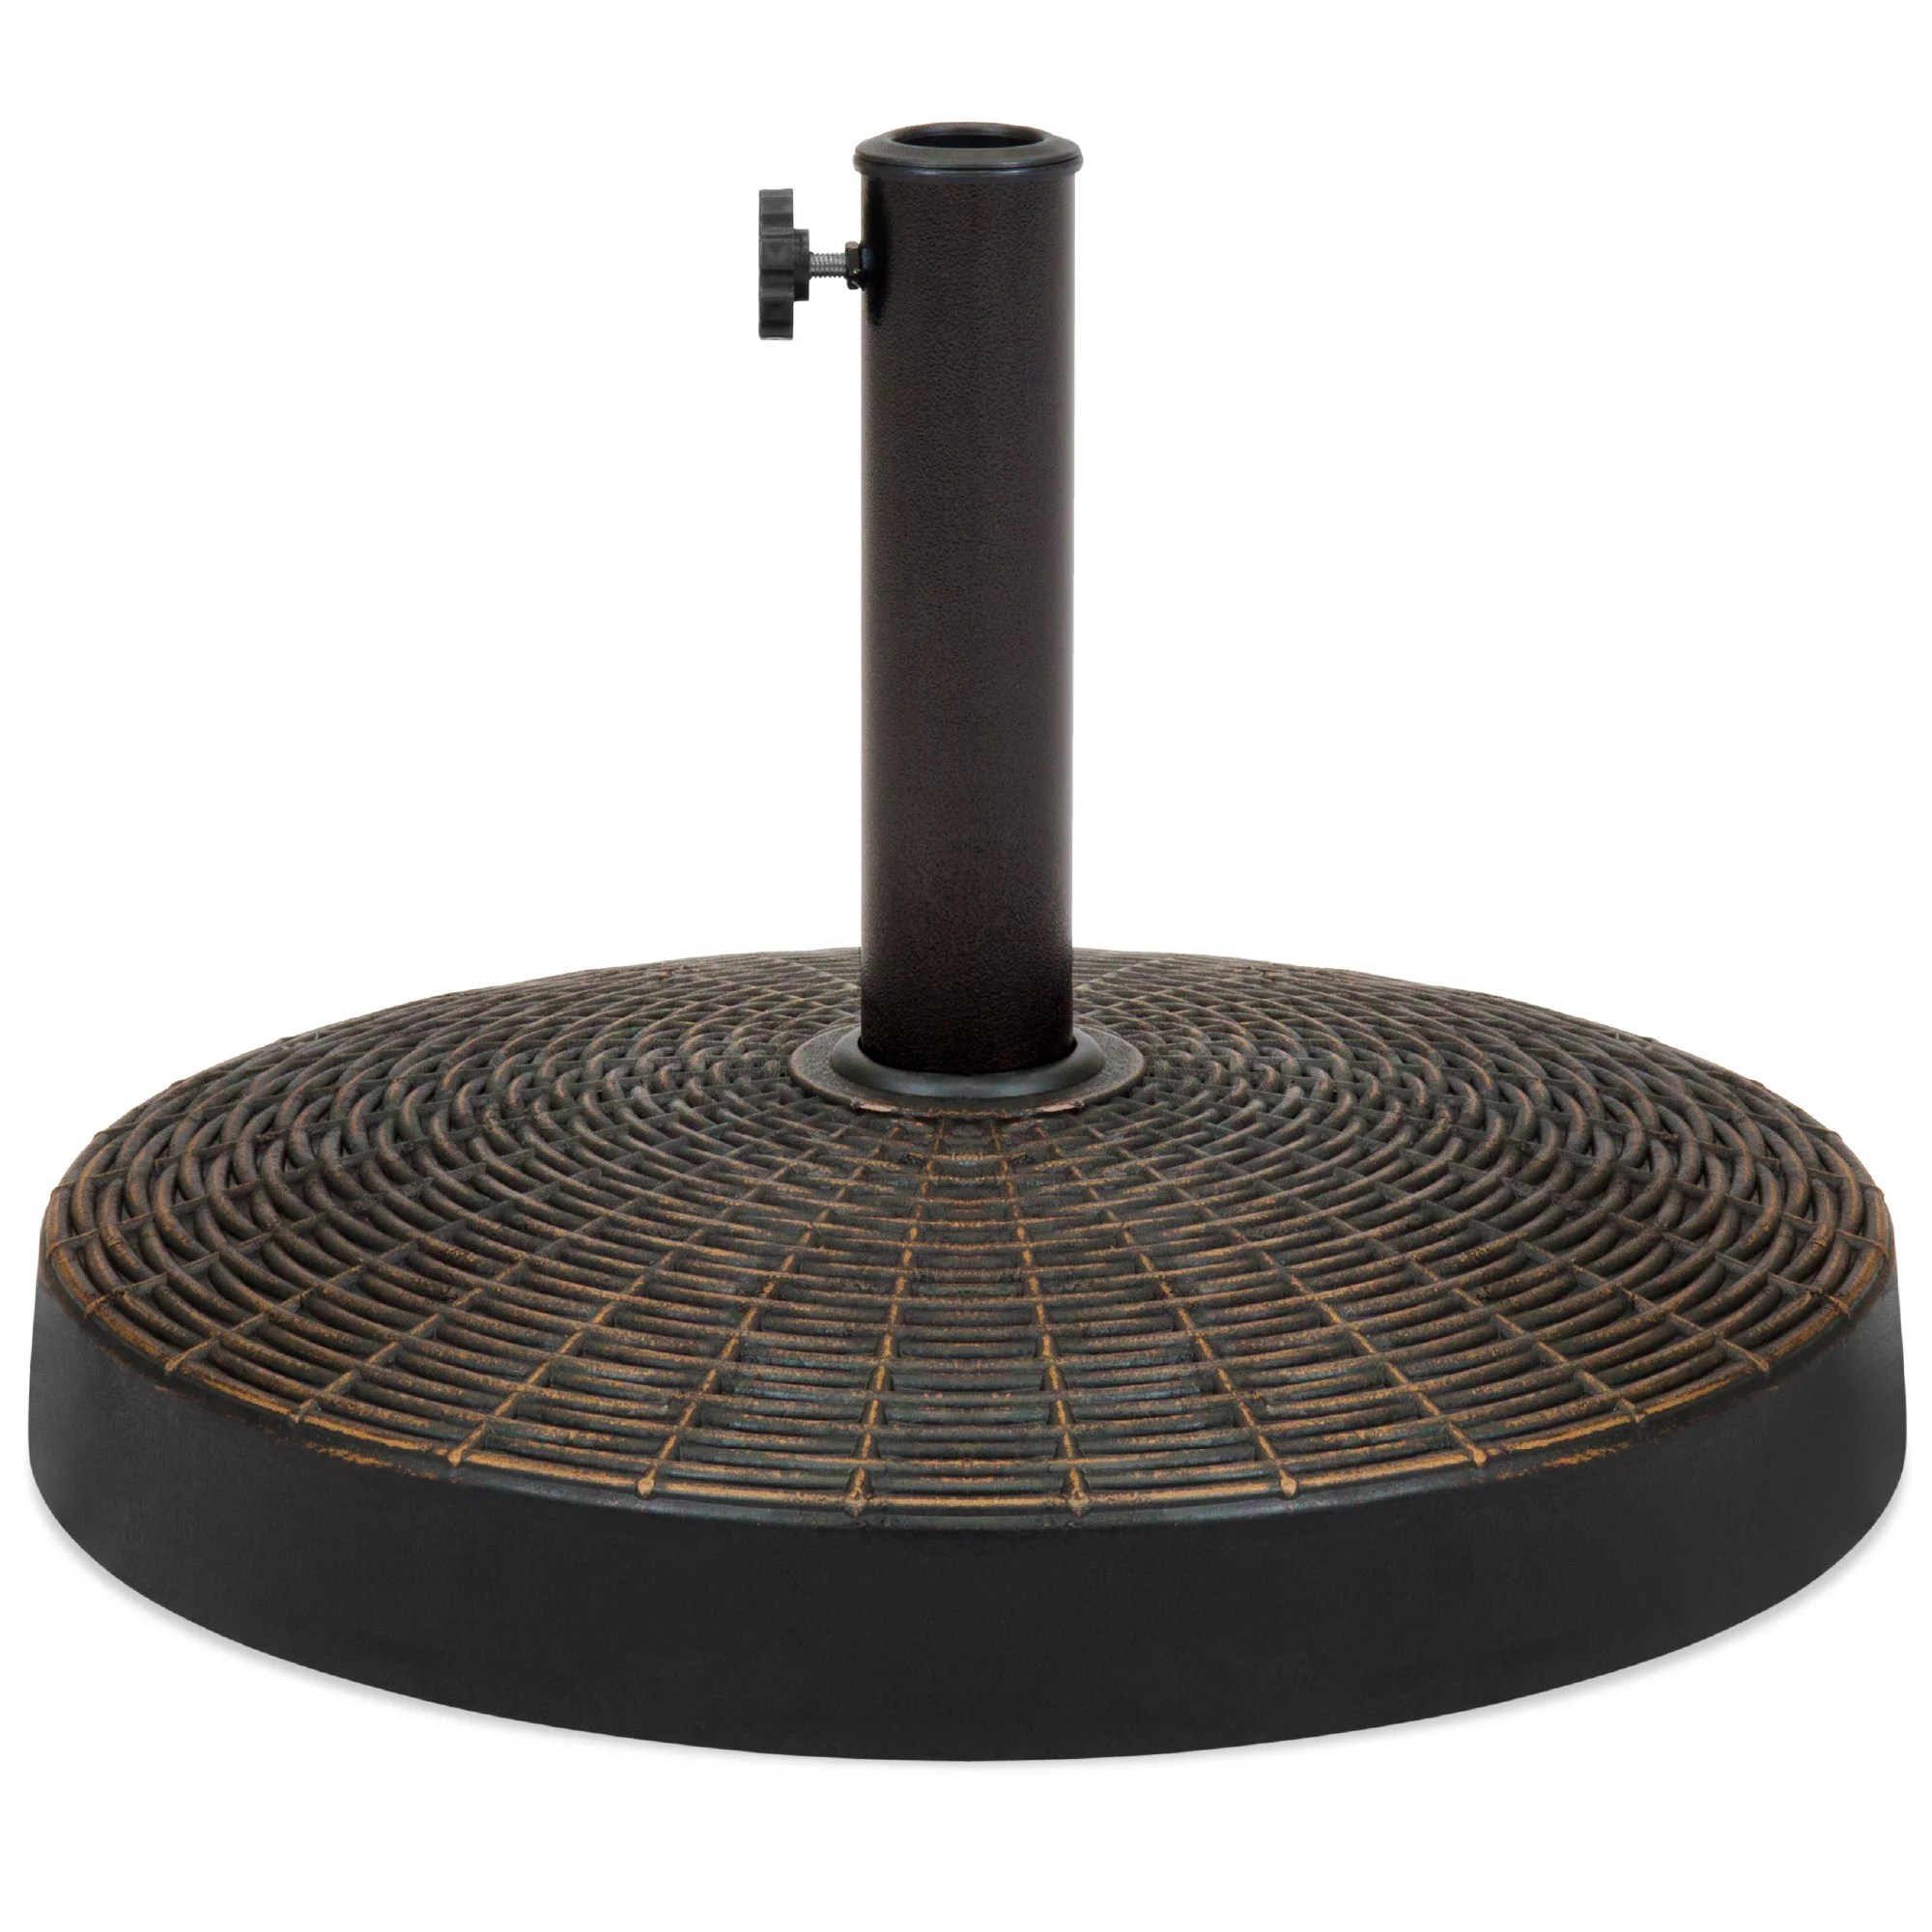 best choice products 55lb round wicker style resin patio umbrella base stand w 1 75in hole bronze finish black walmart com